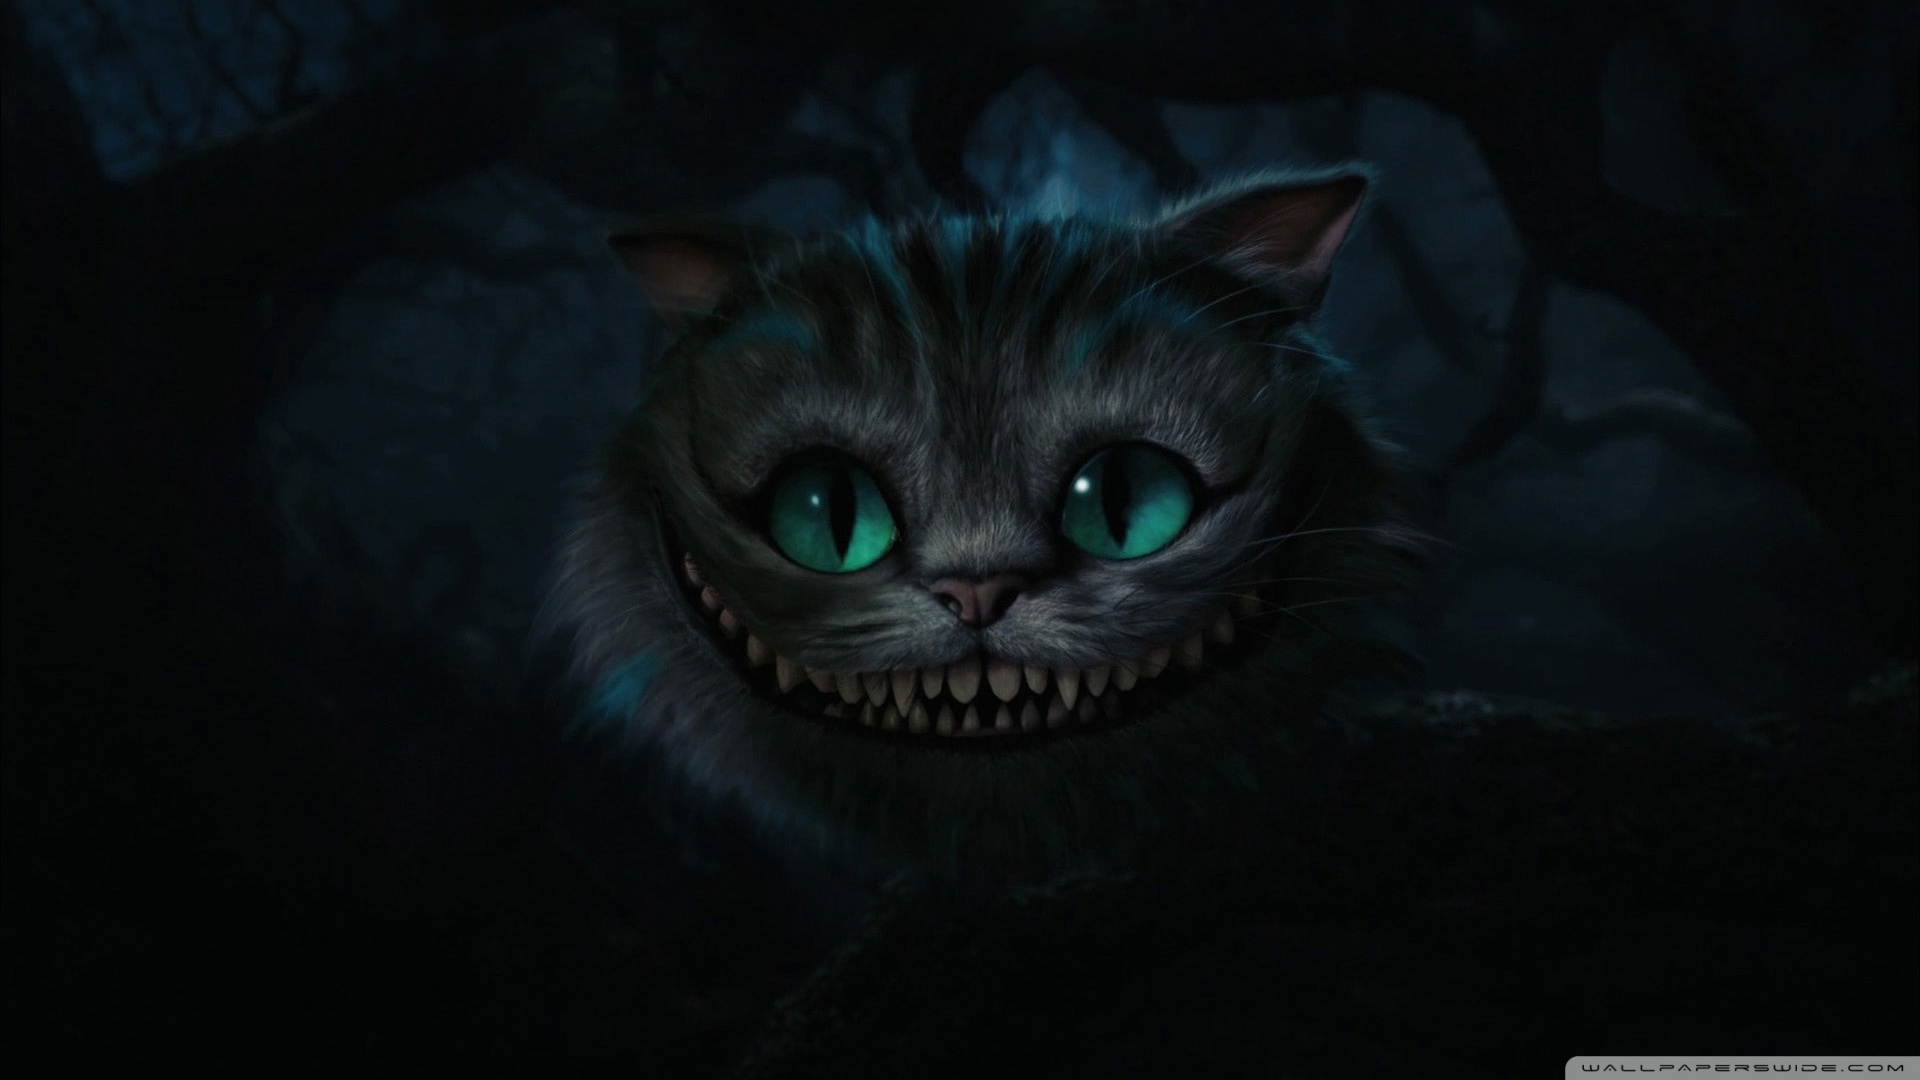 Cheshire Cat Alice In Wonderland Wallpaper 1920x1080 Cheshire Cat 1920x1080